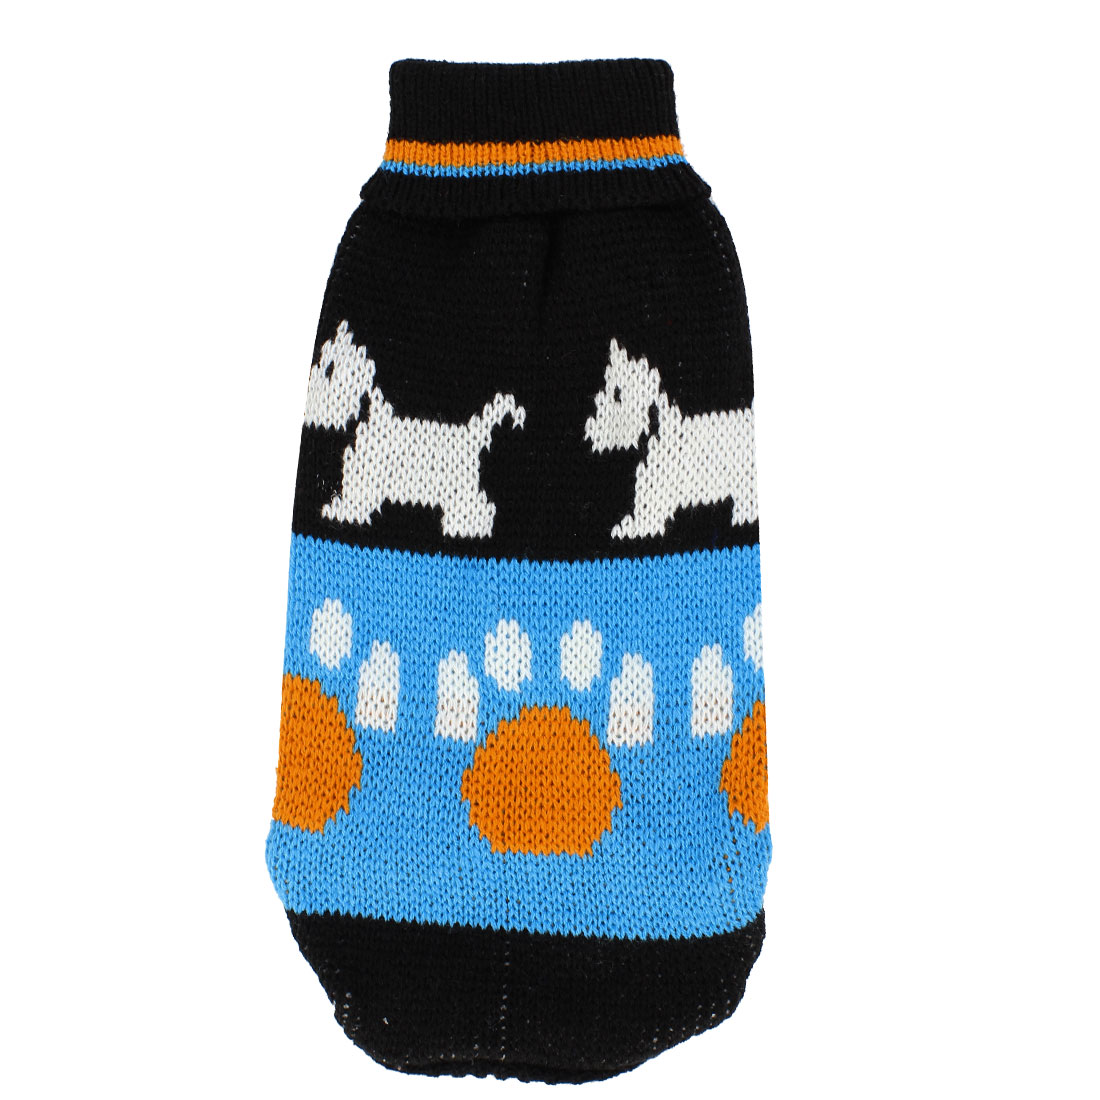 Pet Doggy Yorkie Black Blue Ribbed Cuff Puppy Pattern Knitwear Turtleneck Apparel Sweater Size M